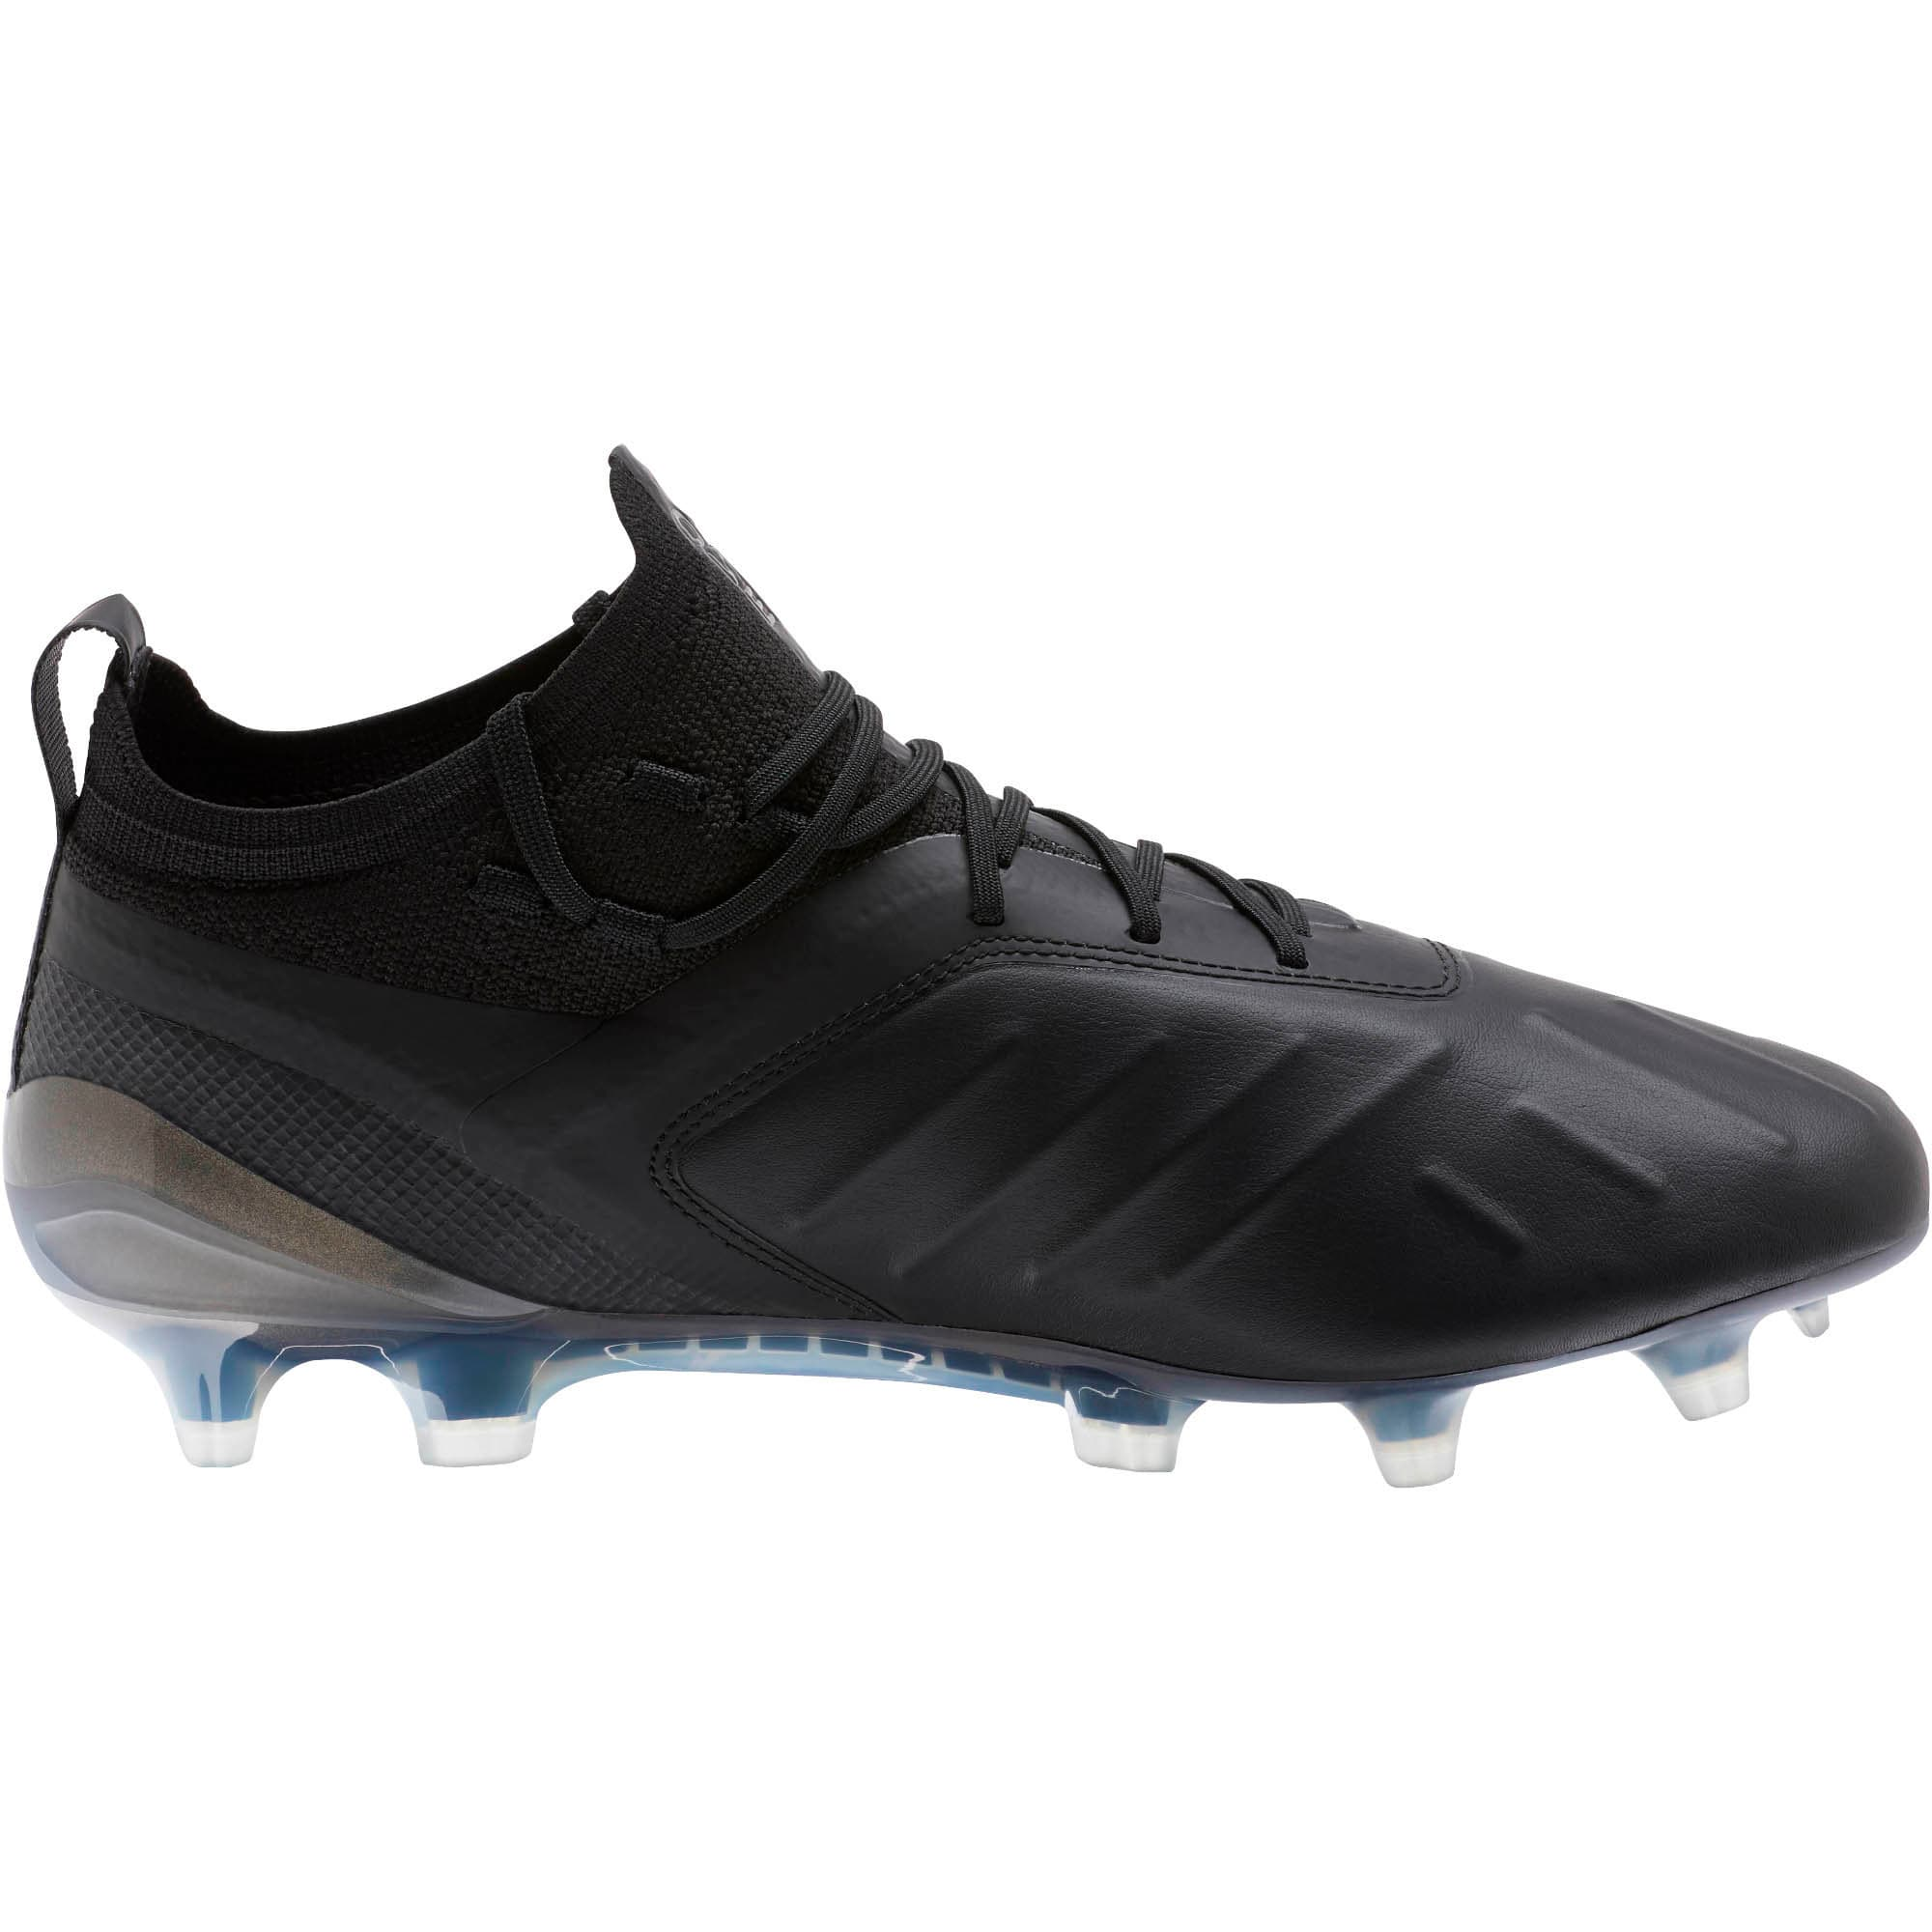 Thumbnail 4 of PUMA ONE 5.1 FG/AG Men's Soccer Cleats, Black-Black-Puma Aged Silver, medium